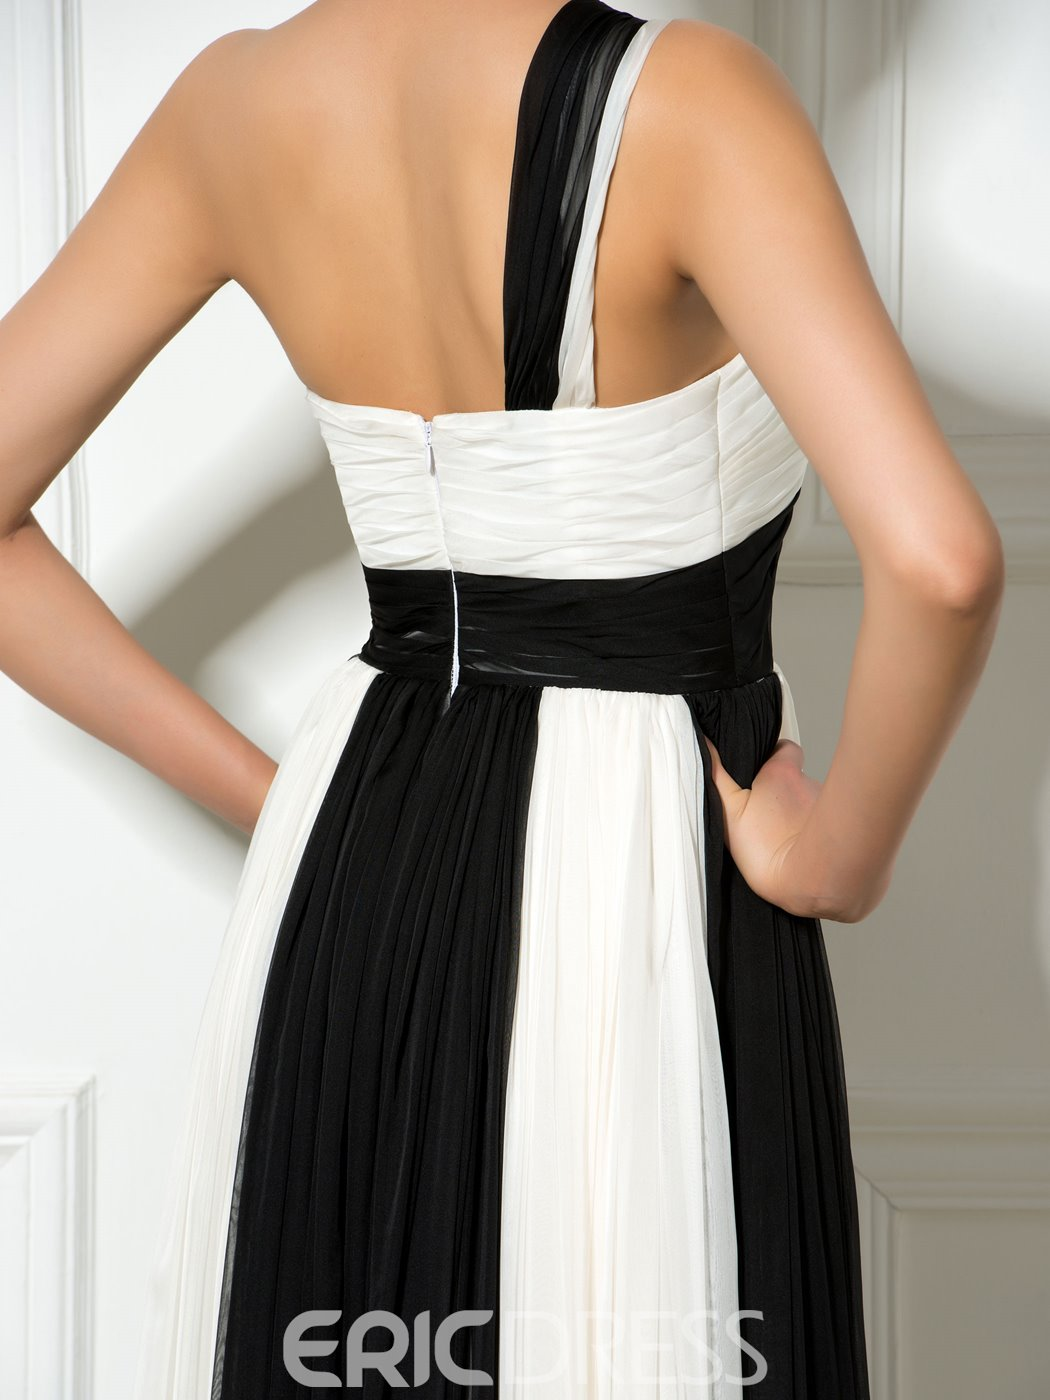 Ericdress One-Shoulder Contrast Color Long Prom Dress